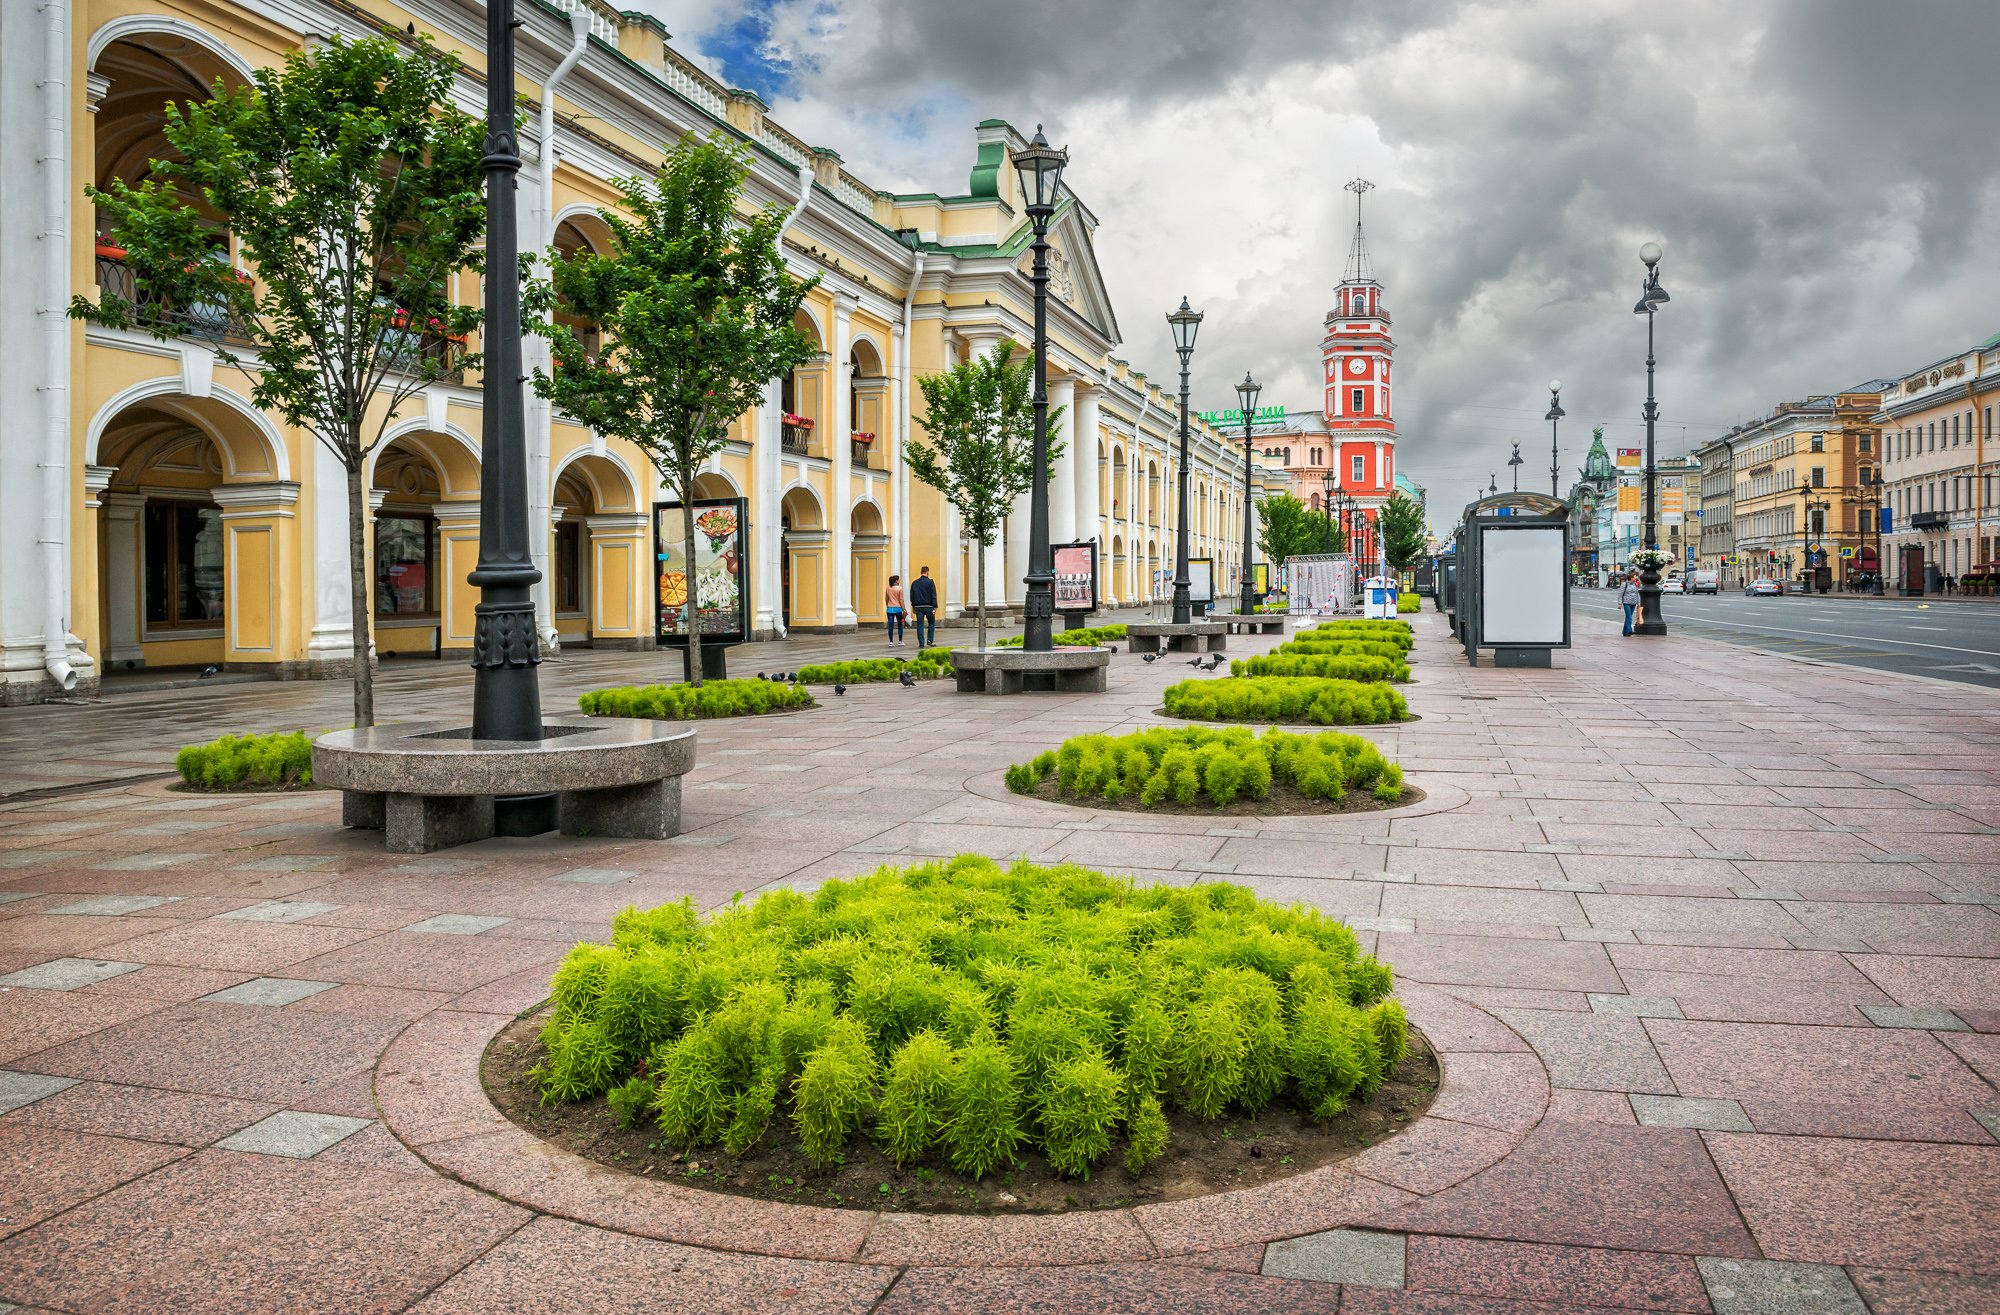 What to do in St Petersburg: shop in Gostiny Dvor